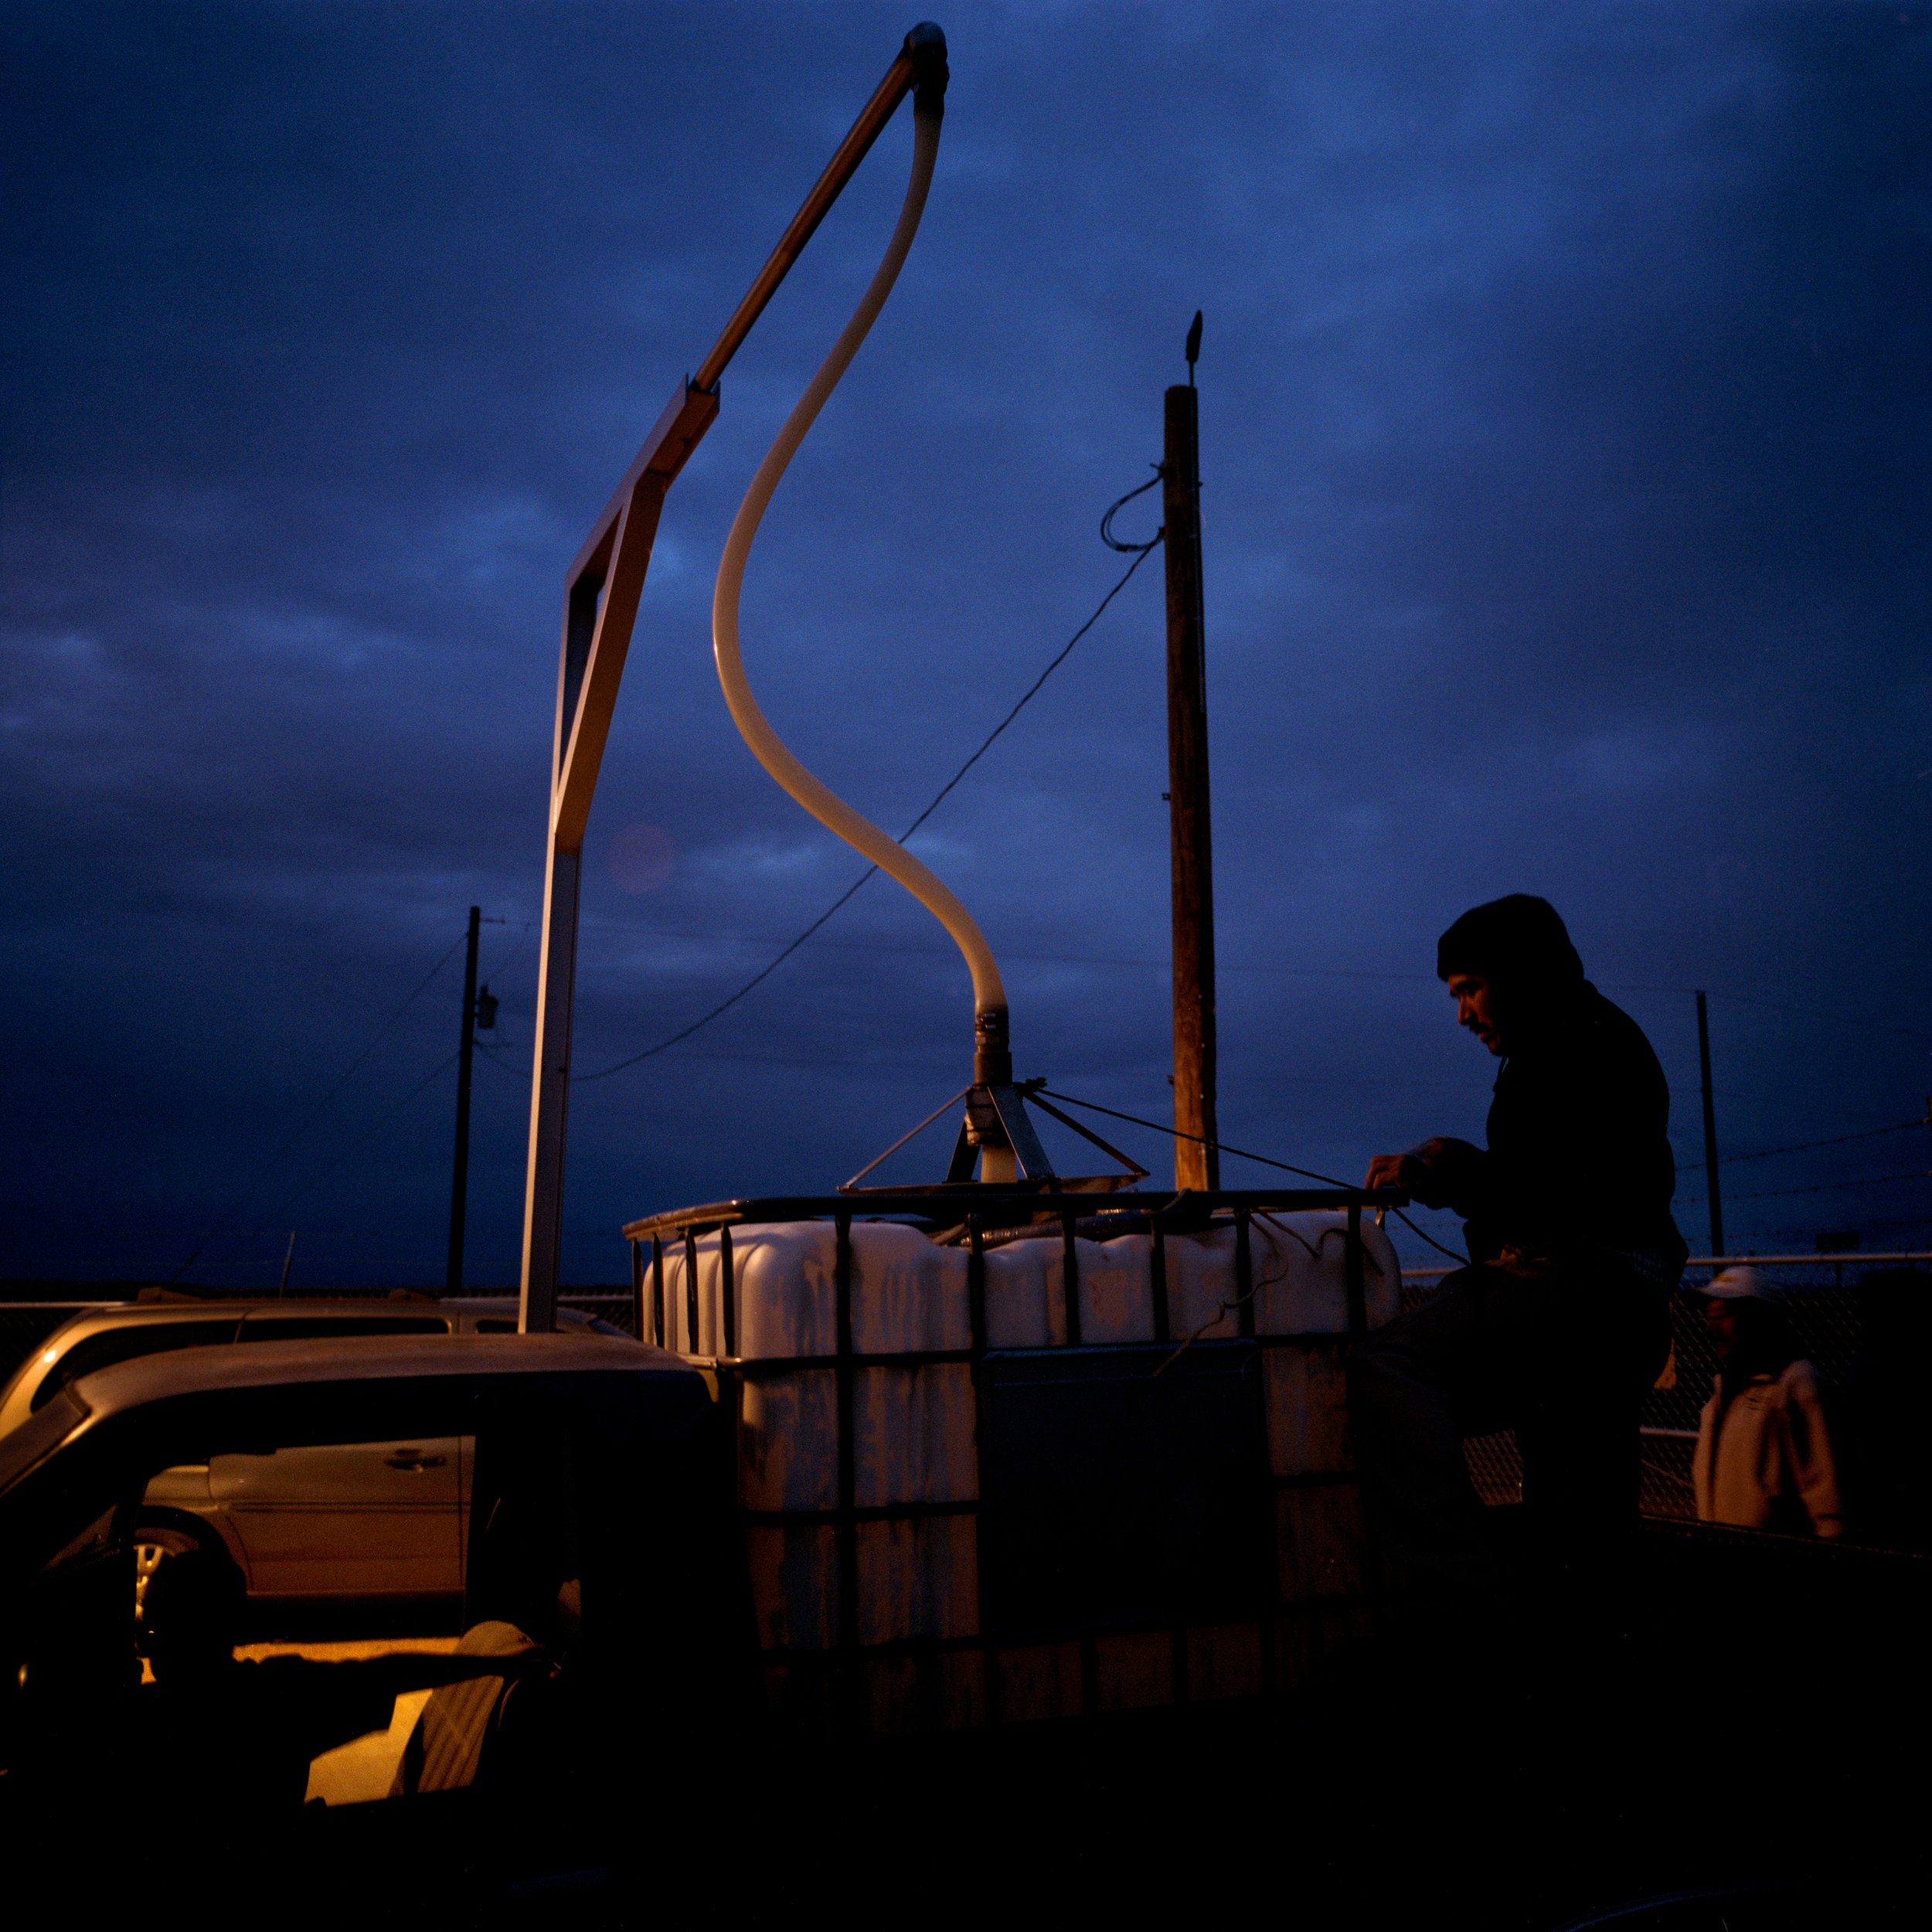 Isidro Alcudia fills a container with water from a pump that was installed at the base the Pajarito Mesa, New Mexico, USA on Feb. 18 2011. The pump is powered by the last power line before the Mesa. Members of the community haul their water from a pump that the city provided after a decade-long search for funding and permission.